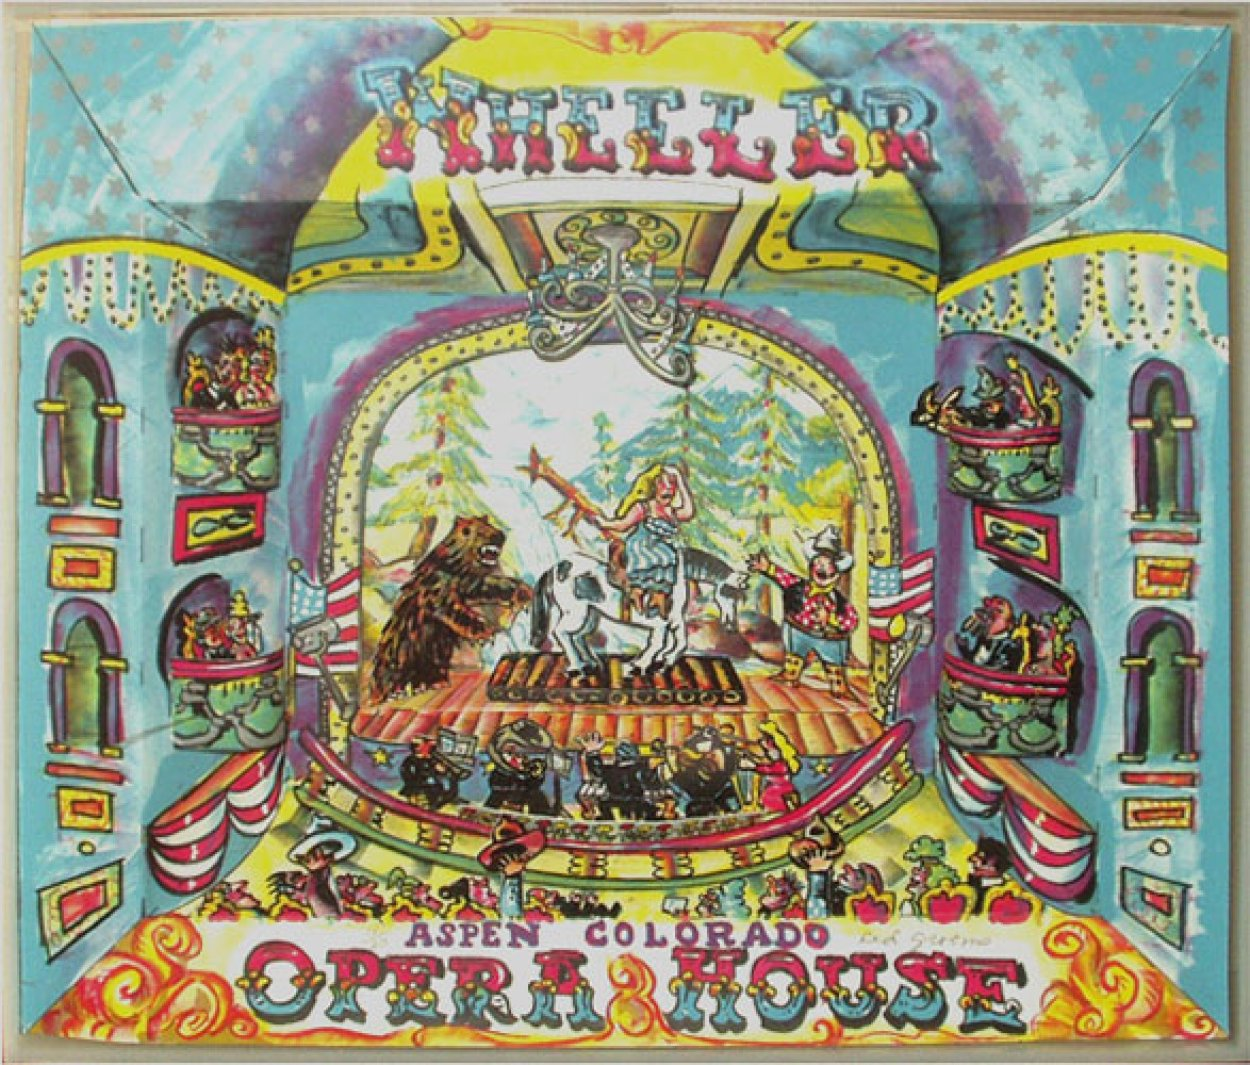 Wheeler Opera House 3-D 1984 Limited Edition Print by Red Grooms